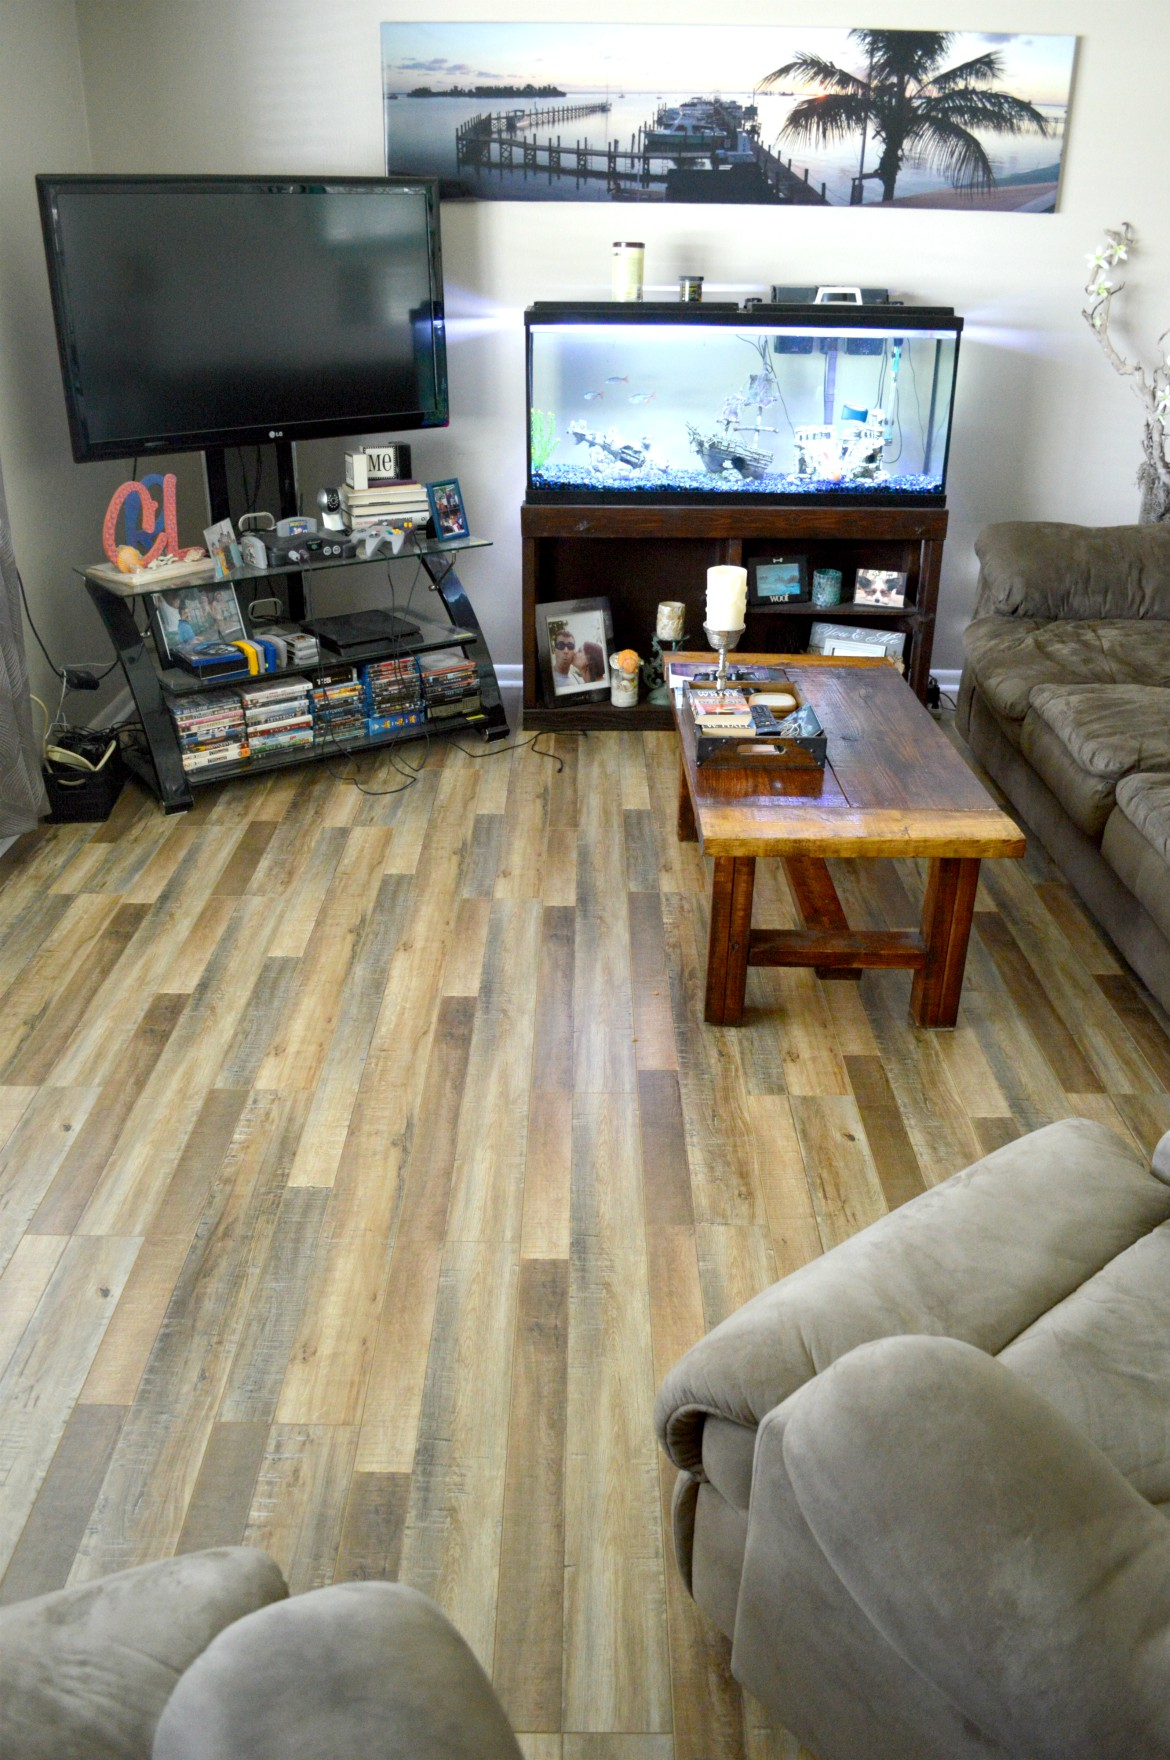 How To Install Laminate Floors On Your Own [A Beginner's ...